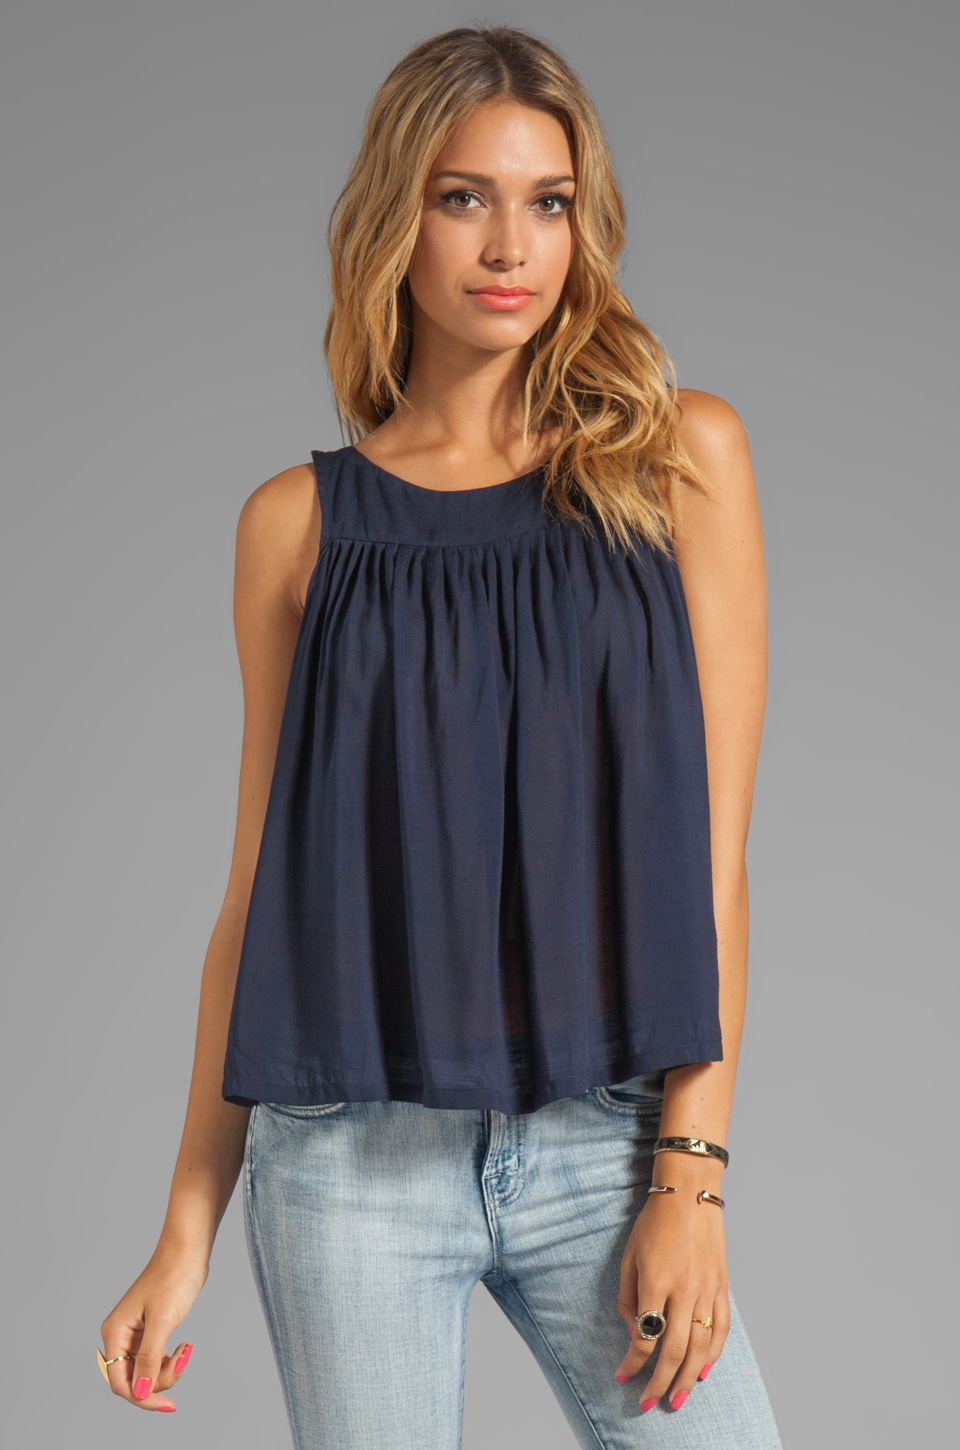 Testament Pleated Swing Top in Navy